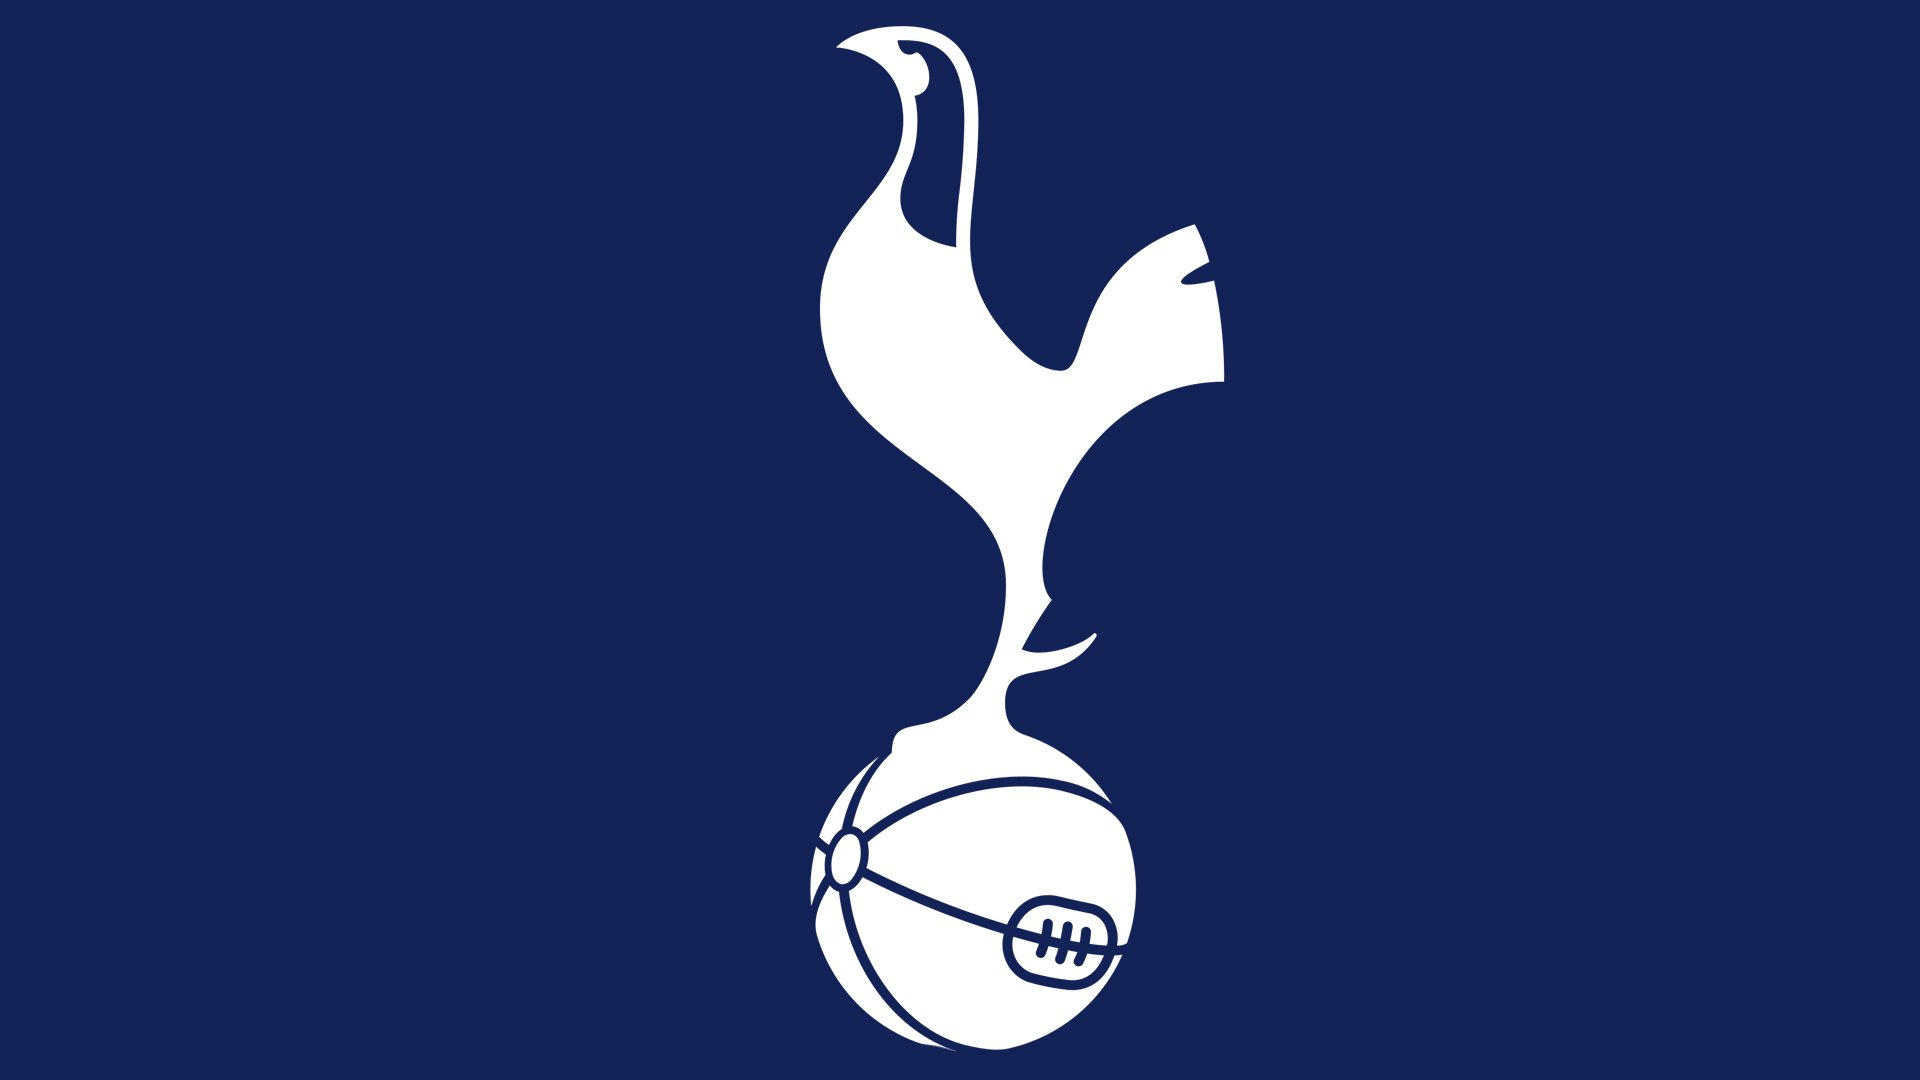 Tottenham: Tottenham Hotspur Logo,Tottenham Hotspur Symbol, Meaning